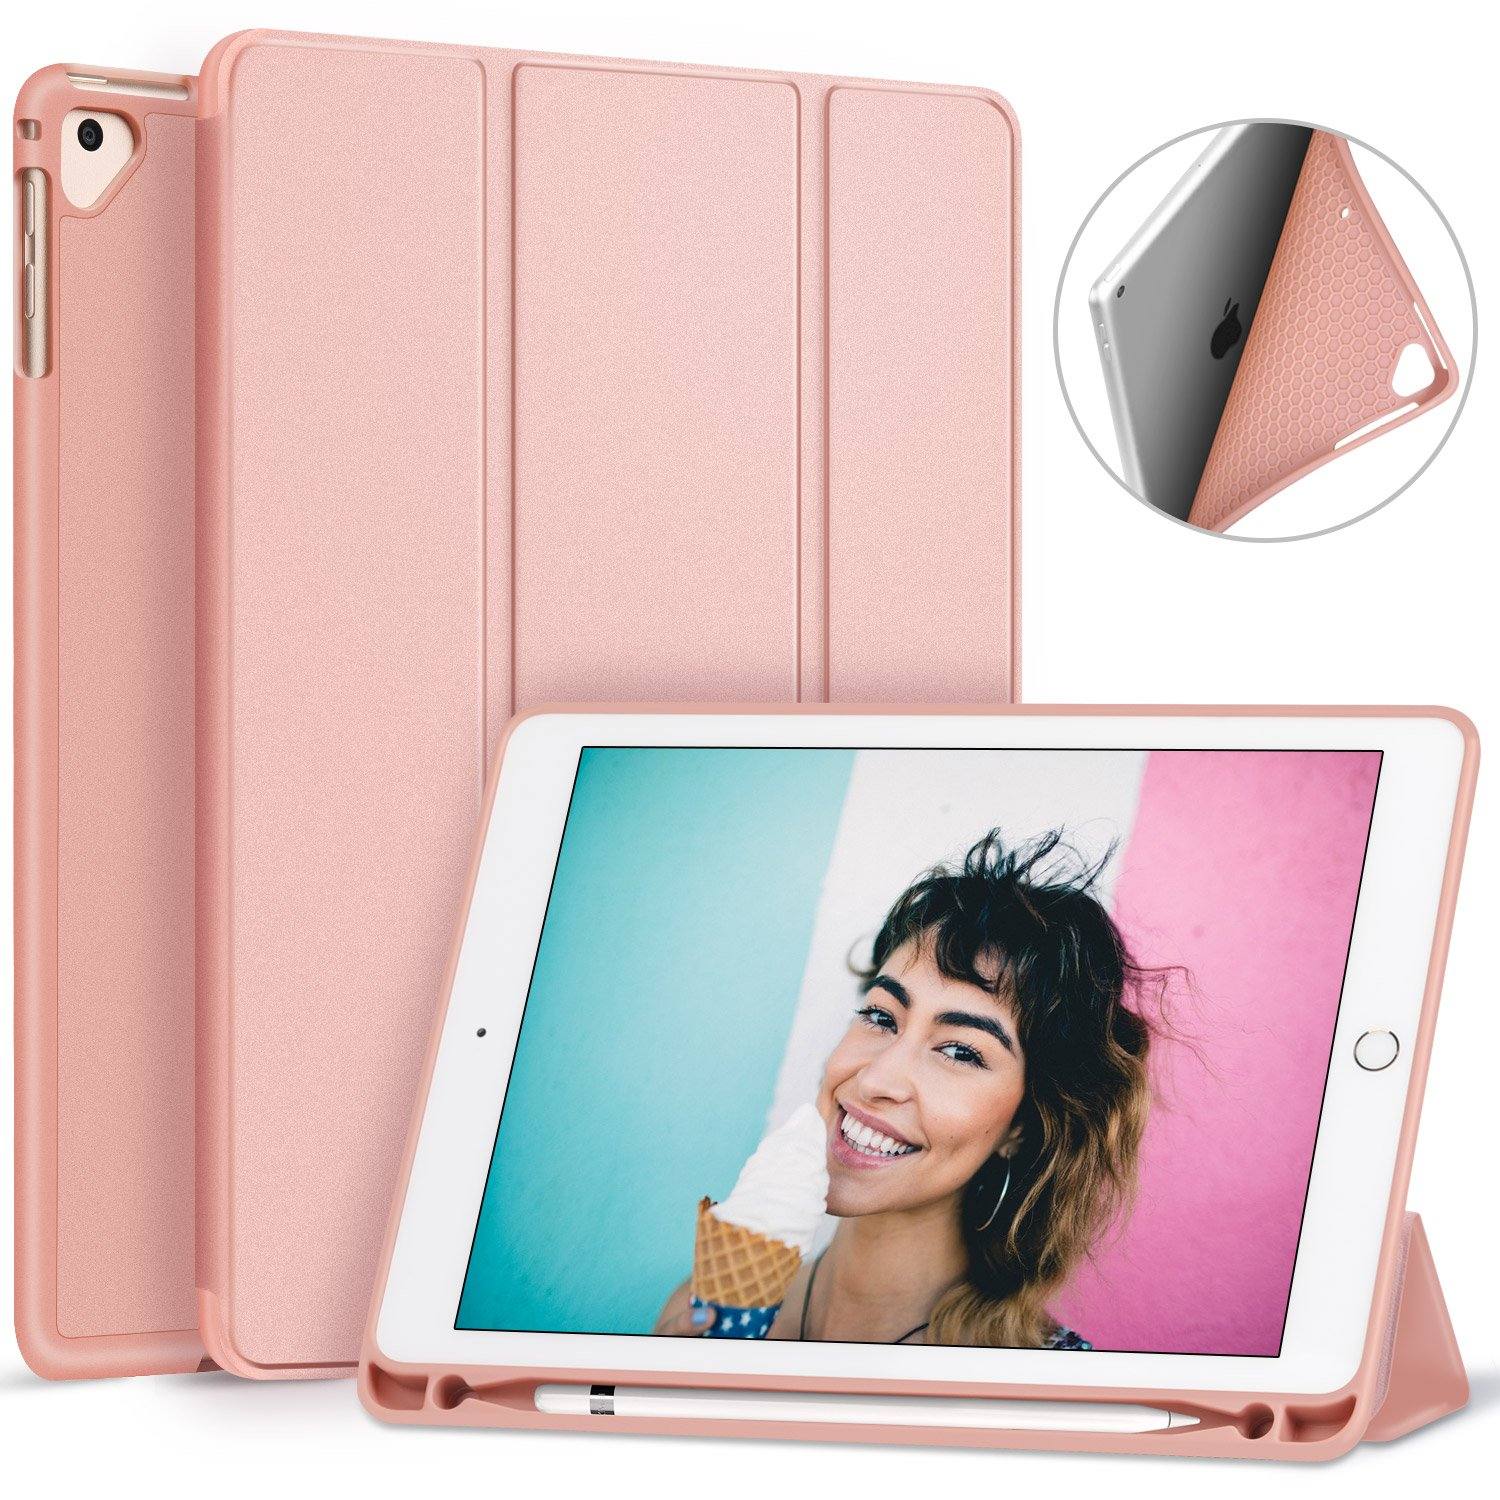 Ztotop Newest iPad 9.7 Inch 2018 Case with Pencil Holder - Lightweight Soft TPU Back Cover and Trifold Stand with Auto Sleep/Wake, Protective for Apple iPad 6th Generation(A1893/A1954), Rose Gold by Ztotop